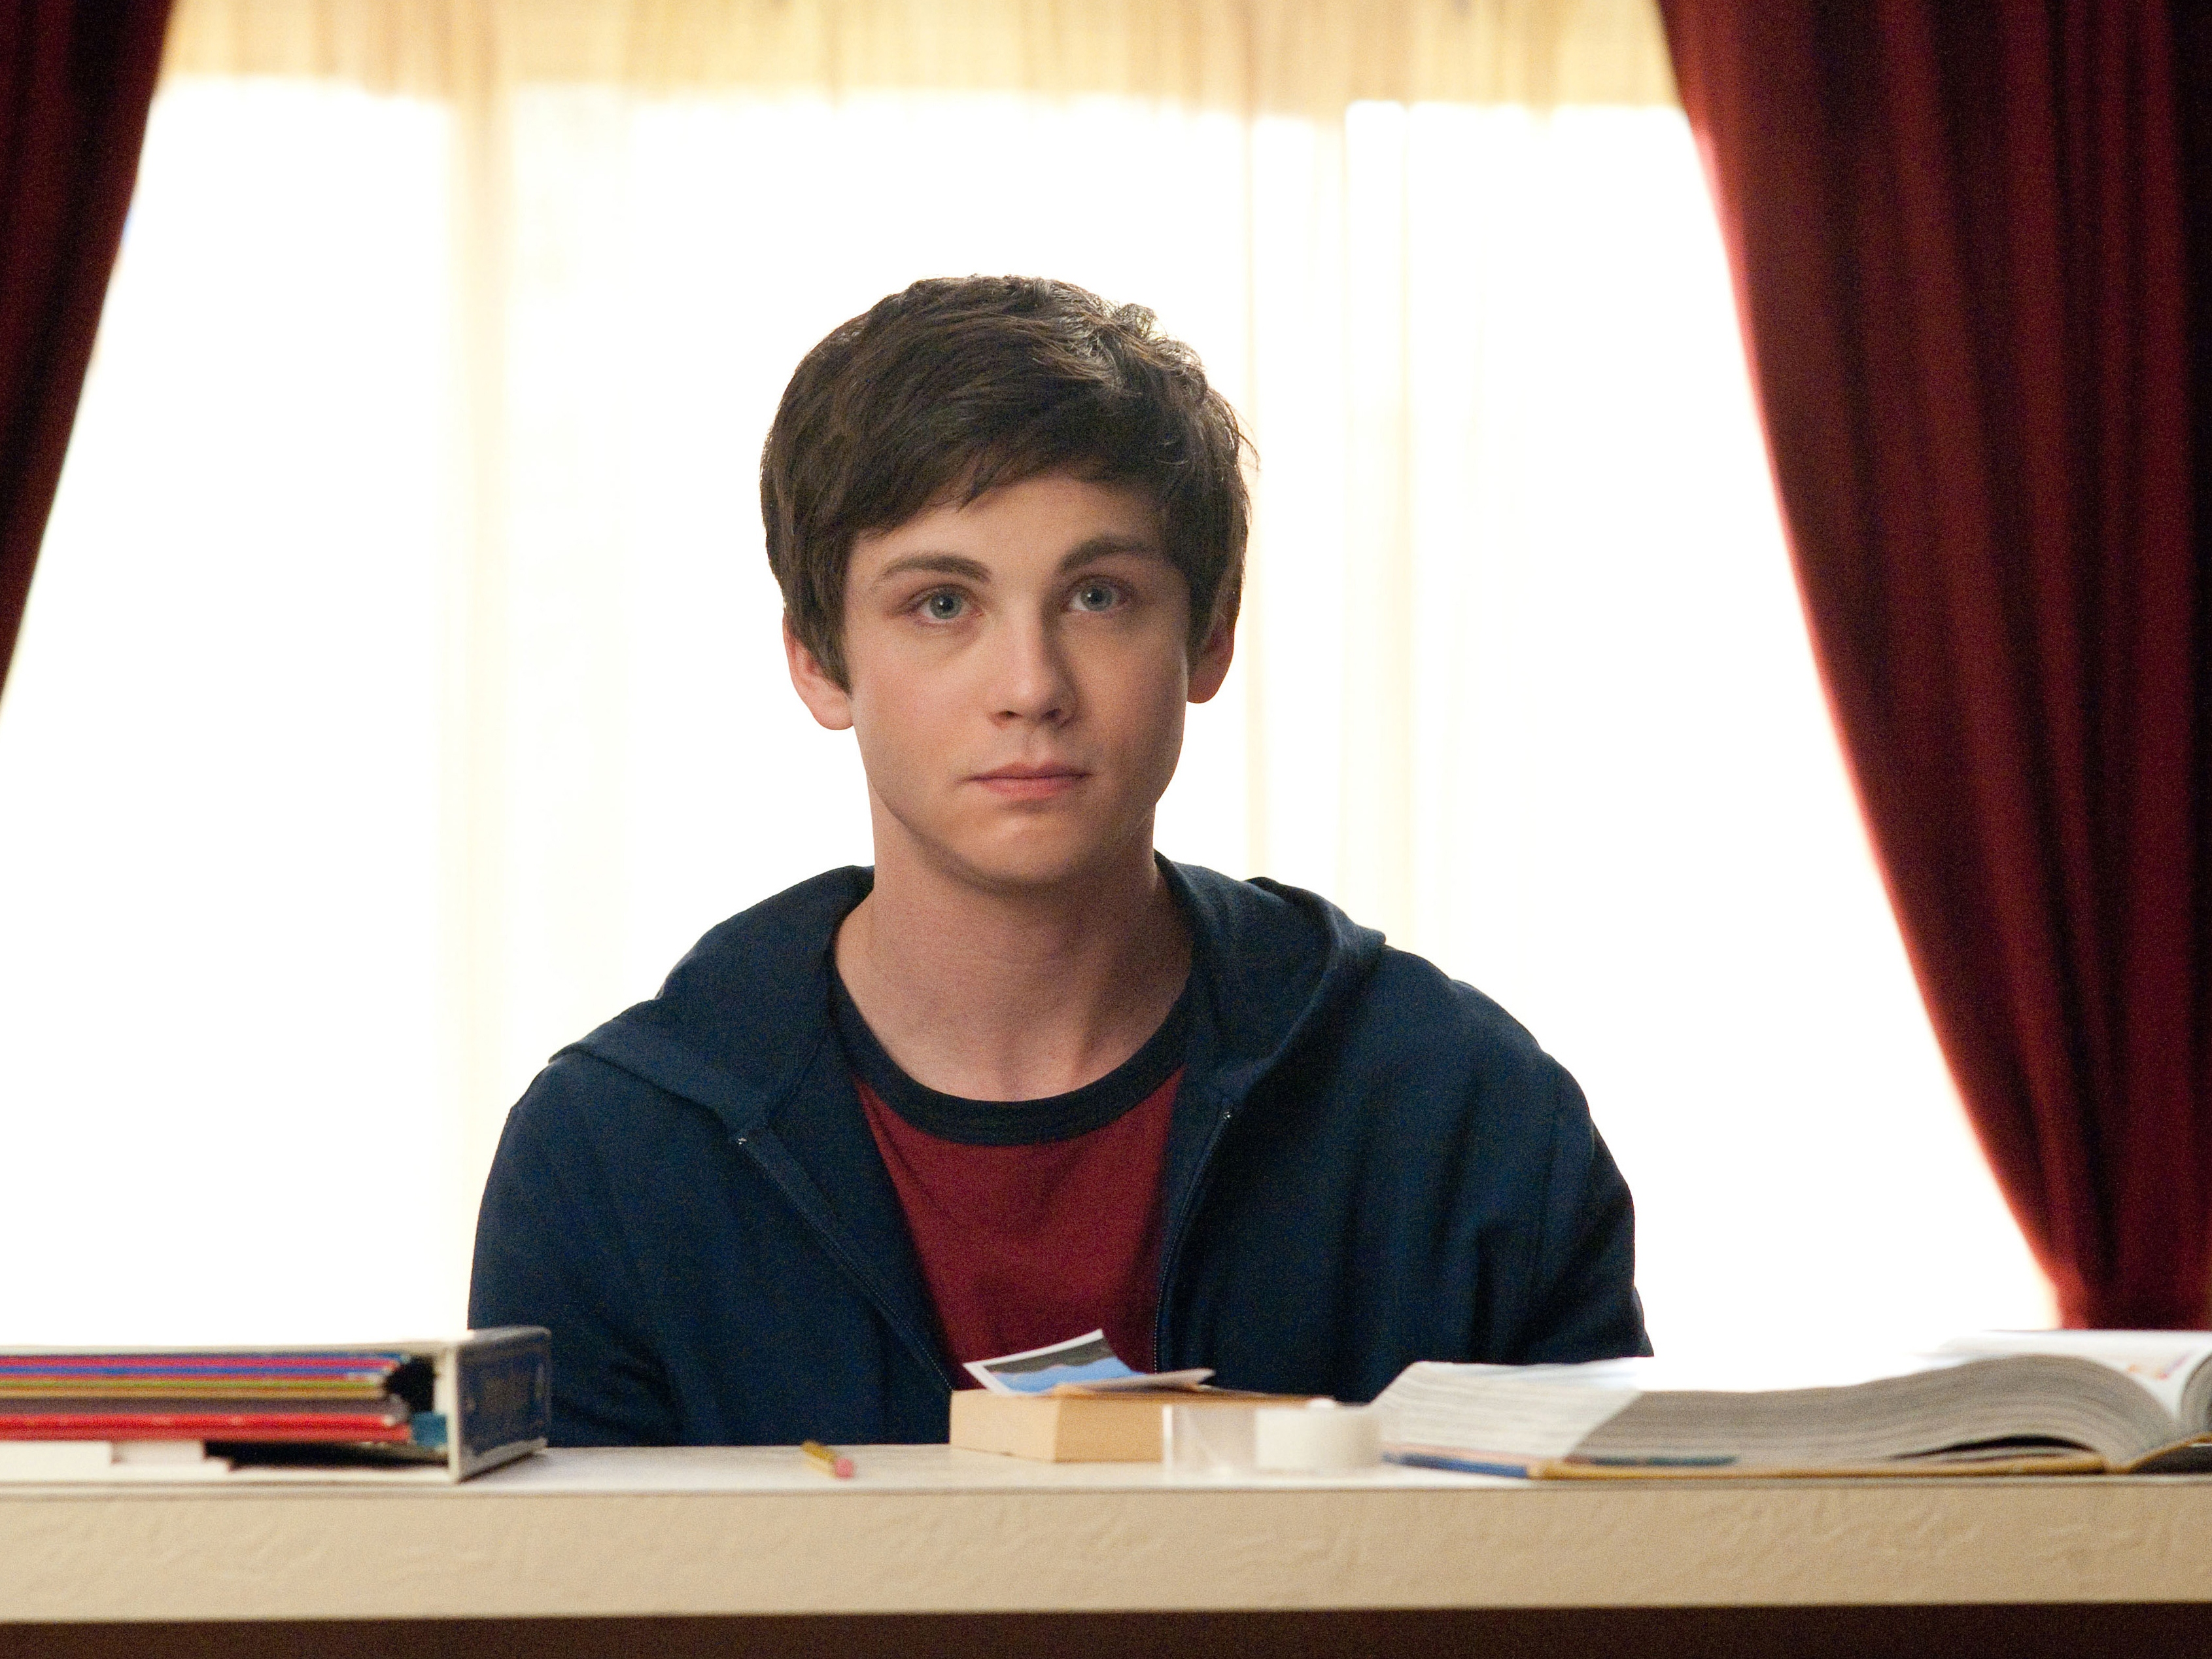 BH Interview: Logan Lerman on the 'Perks' of Touching Lives Through Film